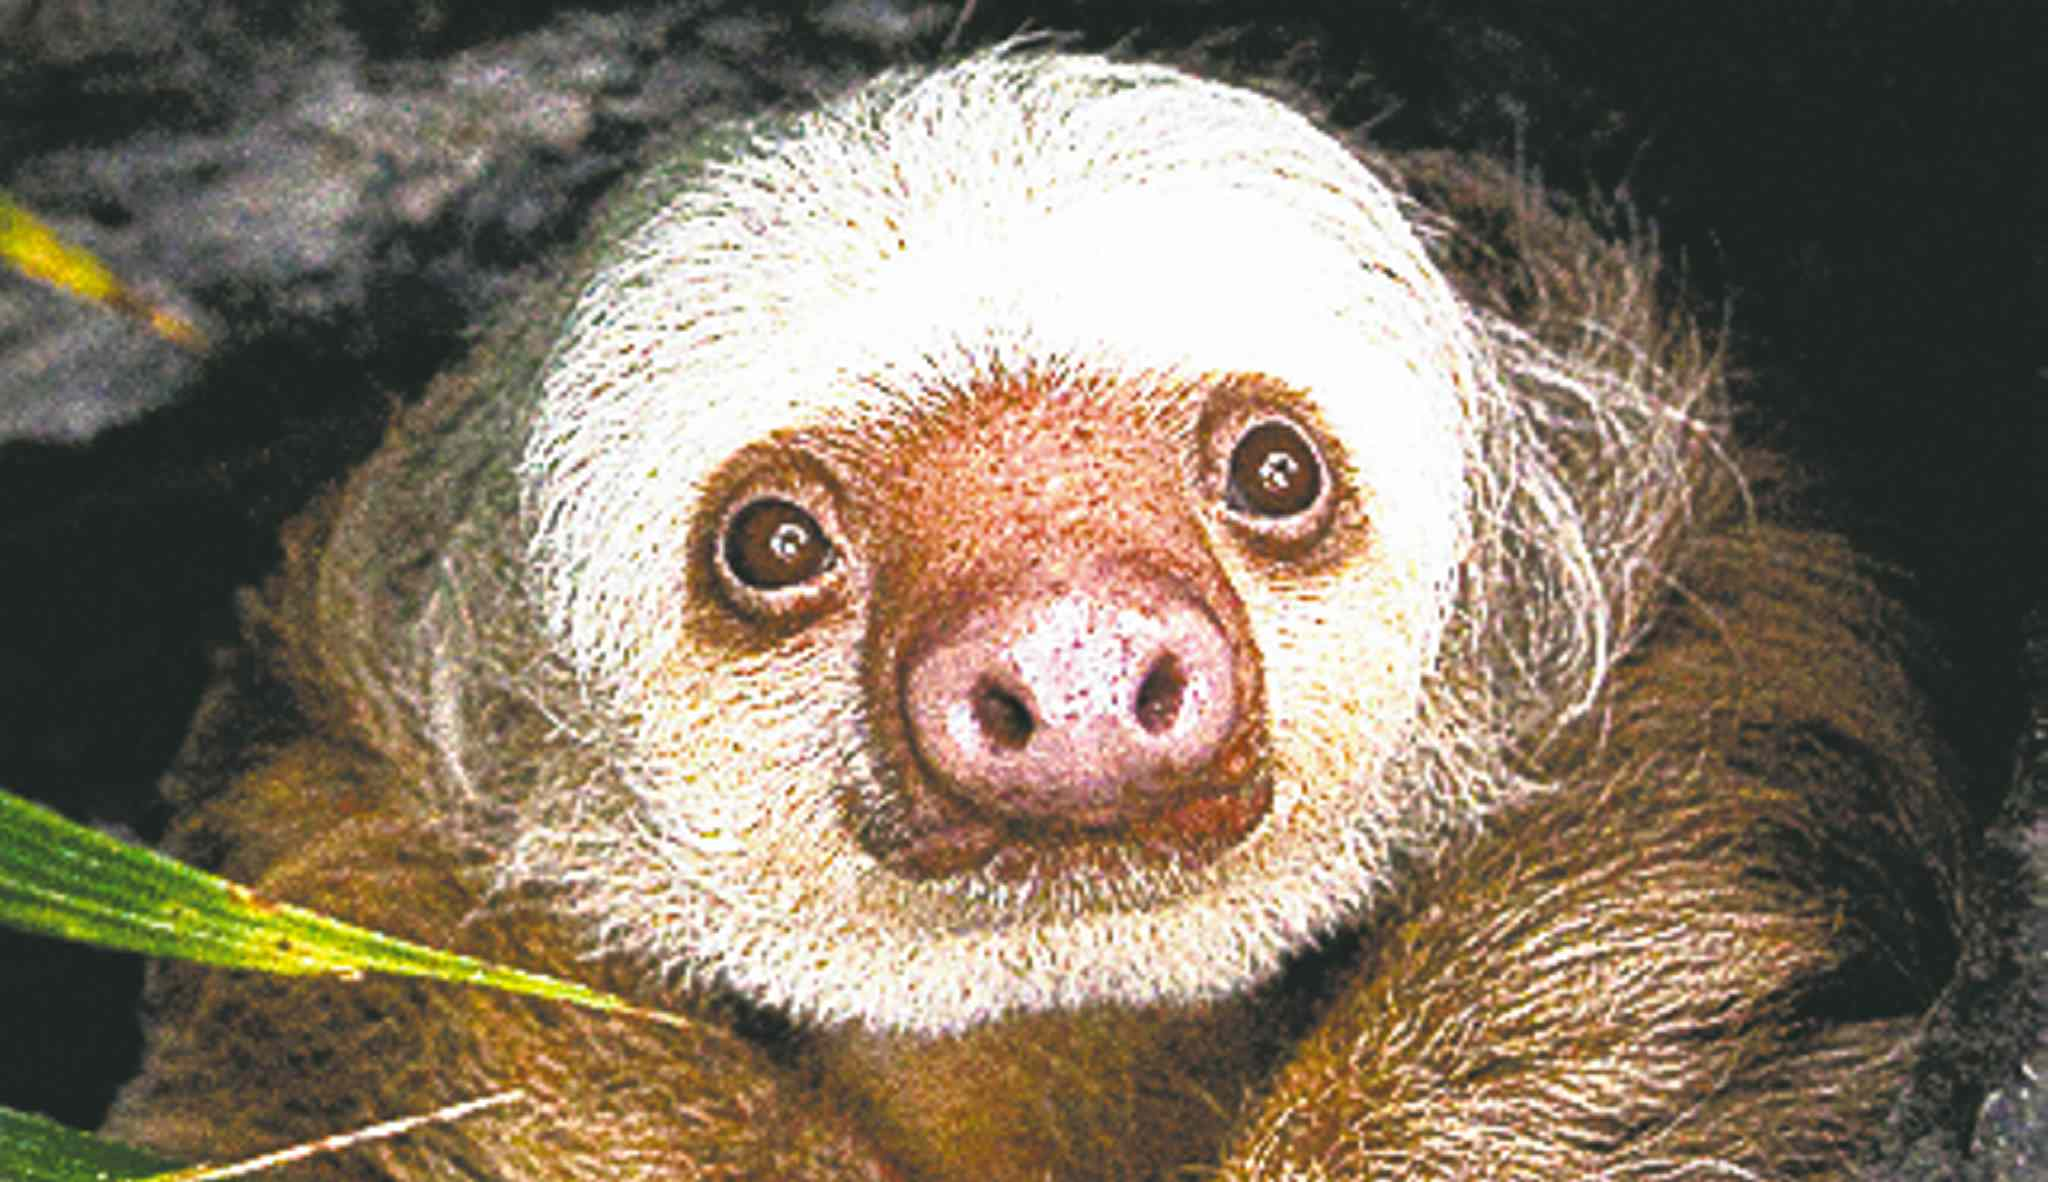 Homer, a two-toed sloth, is a resident of the Detroit Zoo, which is under pressure to make expensive additions to draw more visitors, even as support from the insolvent city may disappear. Illustrates DETROIT-ZOO (category a) by Tim Jones (c) 2013, Bloomberg News. Moved: Tuesday, Oct. 15, 2013 (MUST CREDIT: Mark M. Gaskill/Detroit Zoological Society).